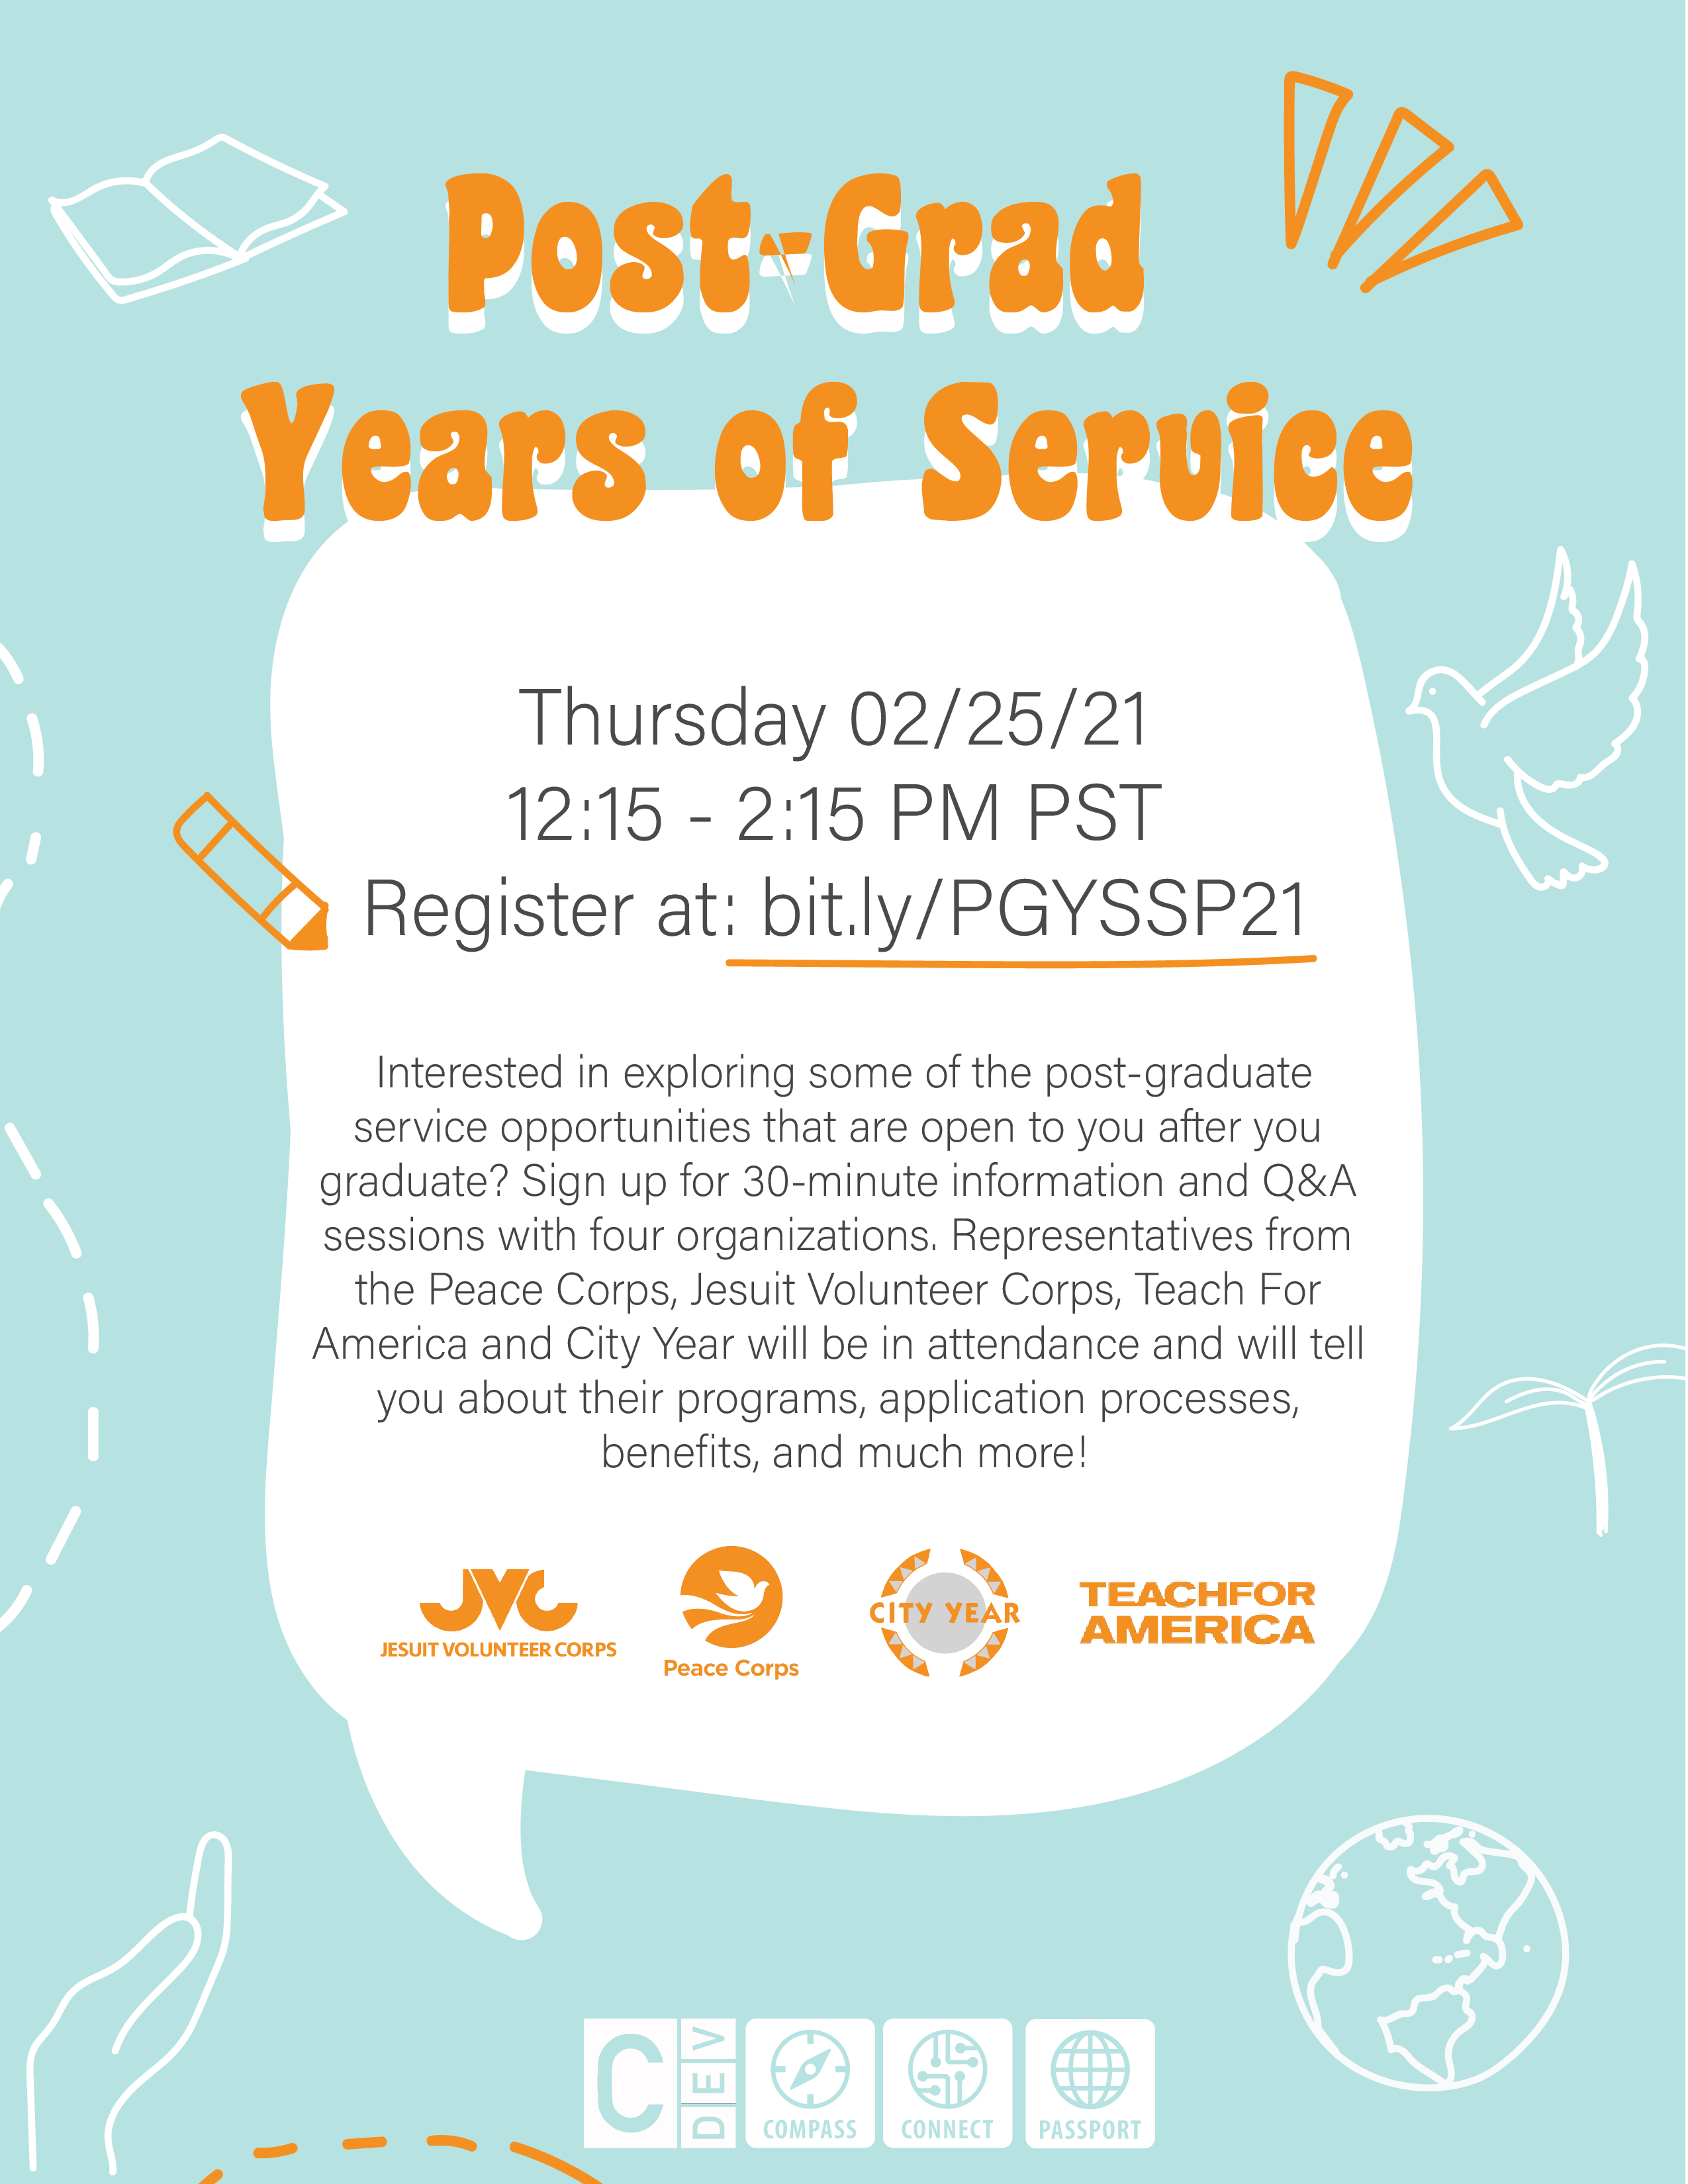 Post-Grad Years of Service flyer